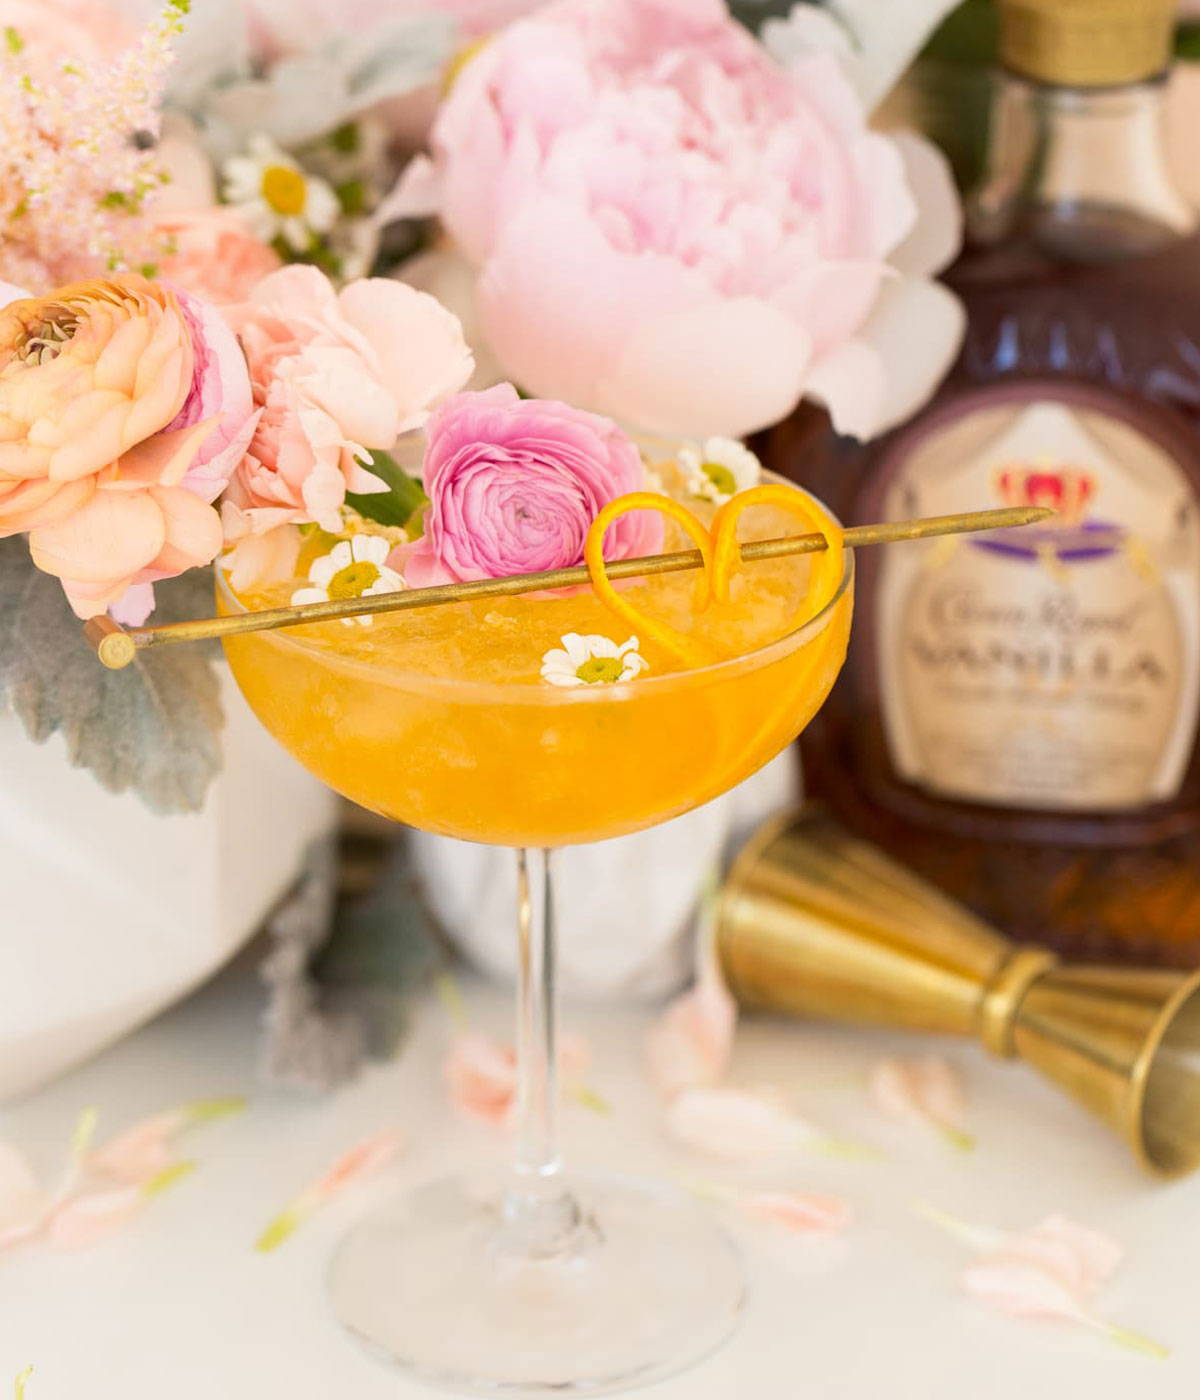 An orange cocktail drink with roses and orange peel.